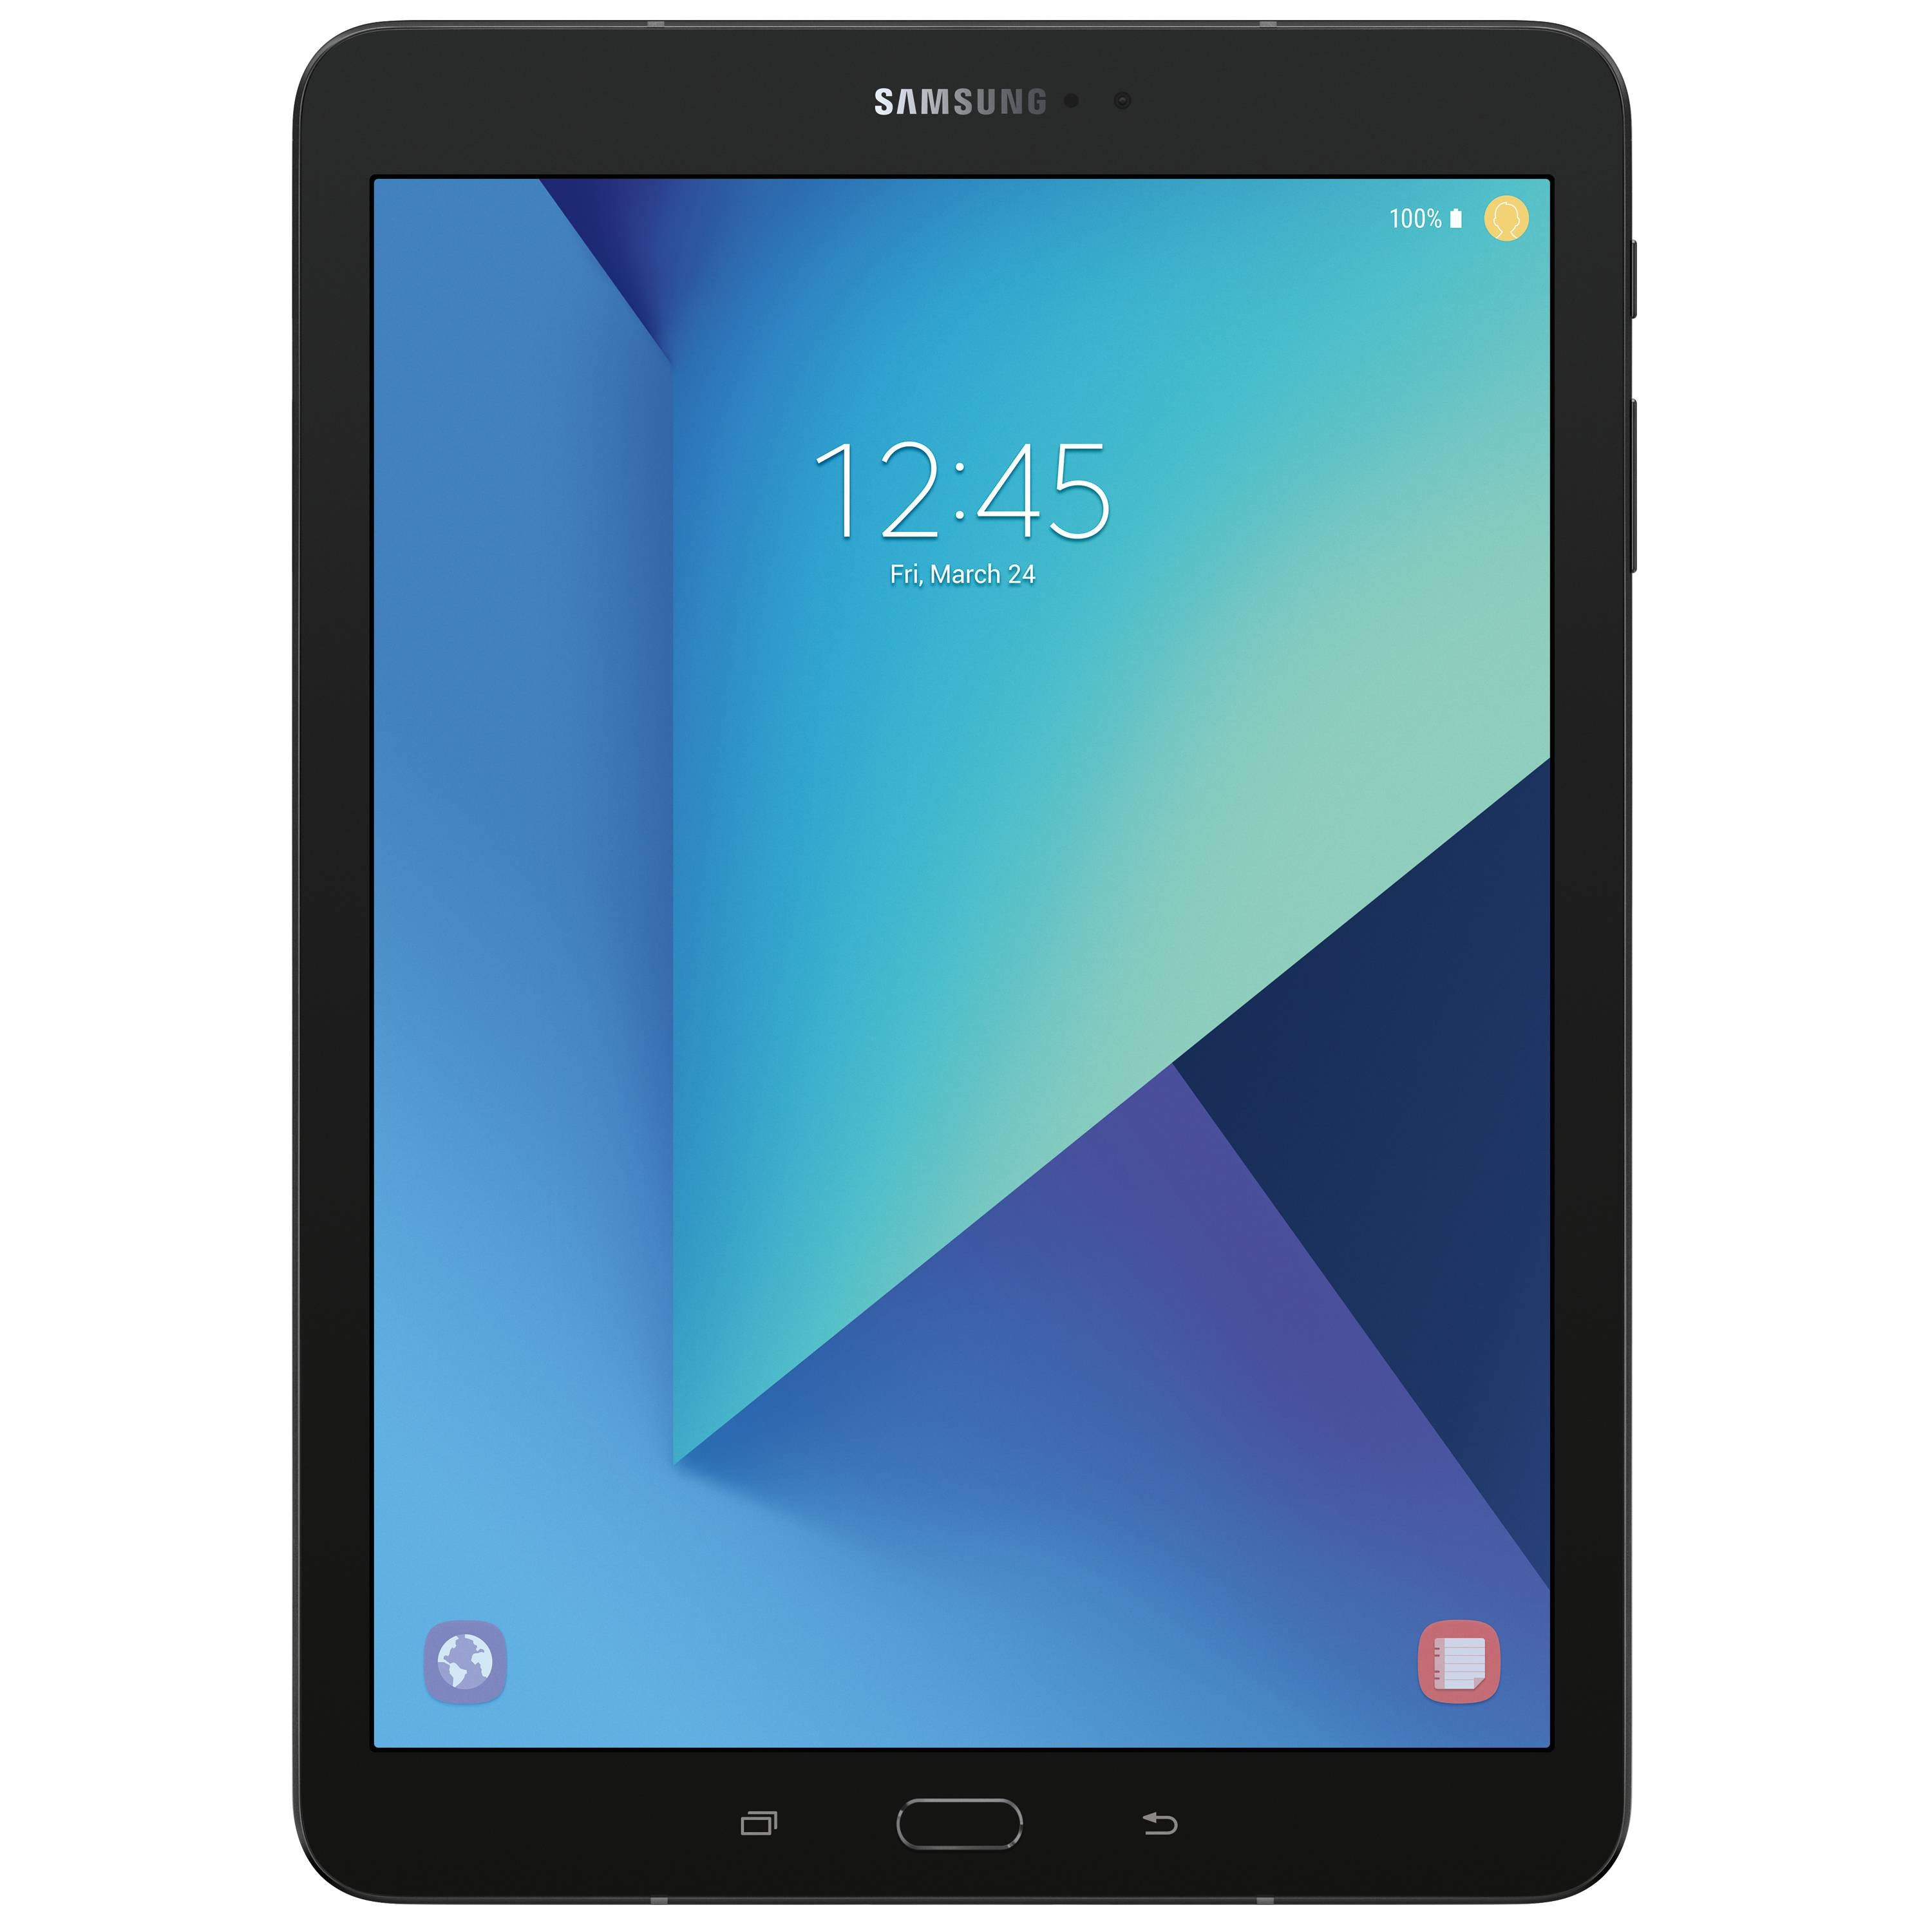 "SAMSUNG Galaxy Tab S3 9.7"" 32GB Android 6.0 Wi-Fi Tablet Black - S Pen - Micro SD Card Slot - SM-T820NZKAXAR"